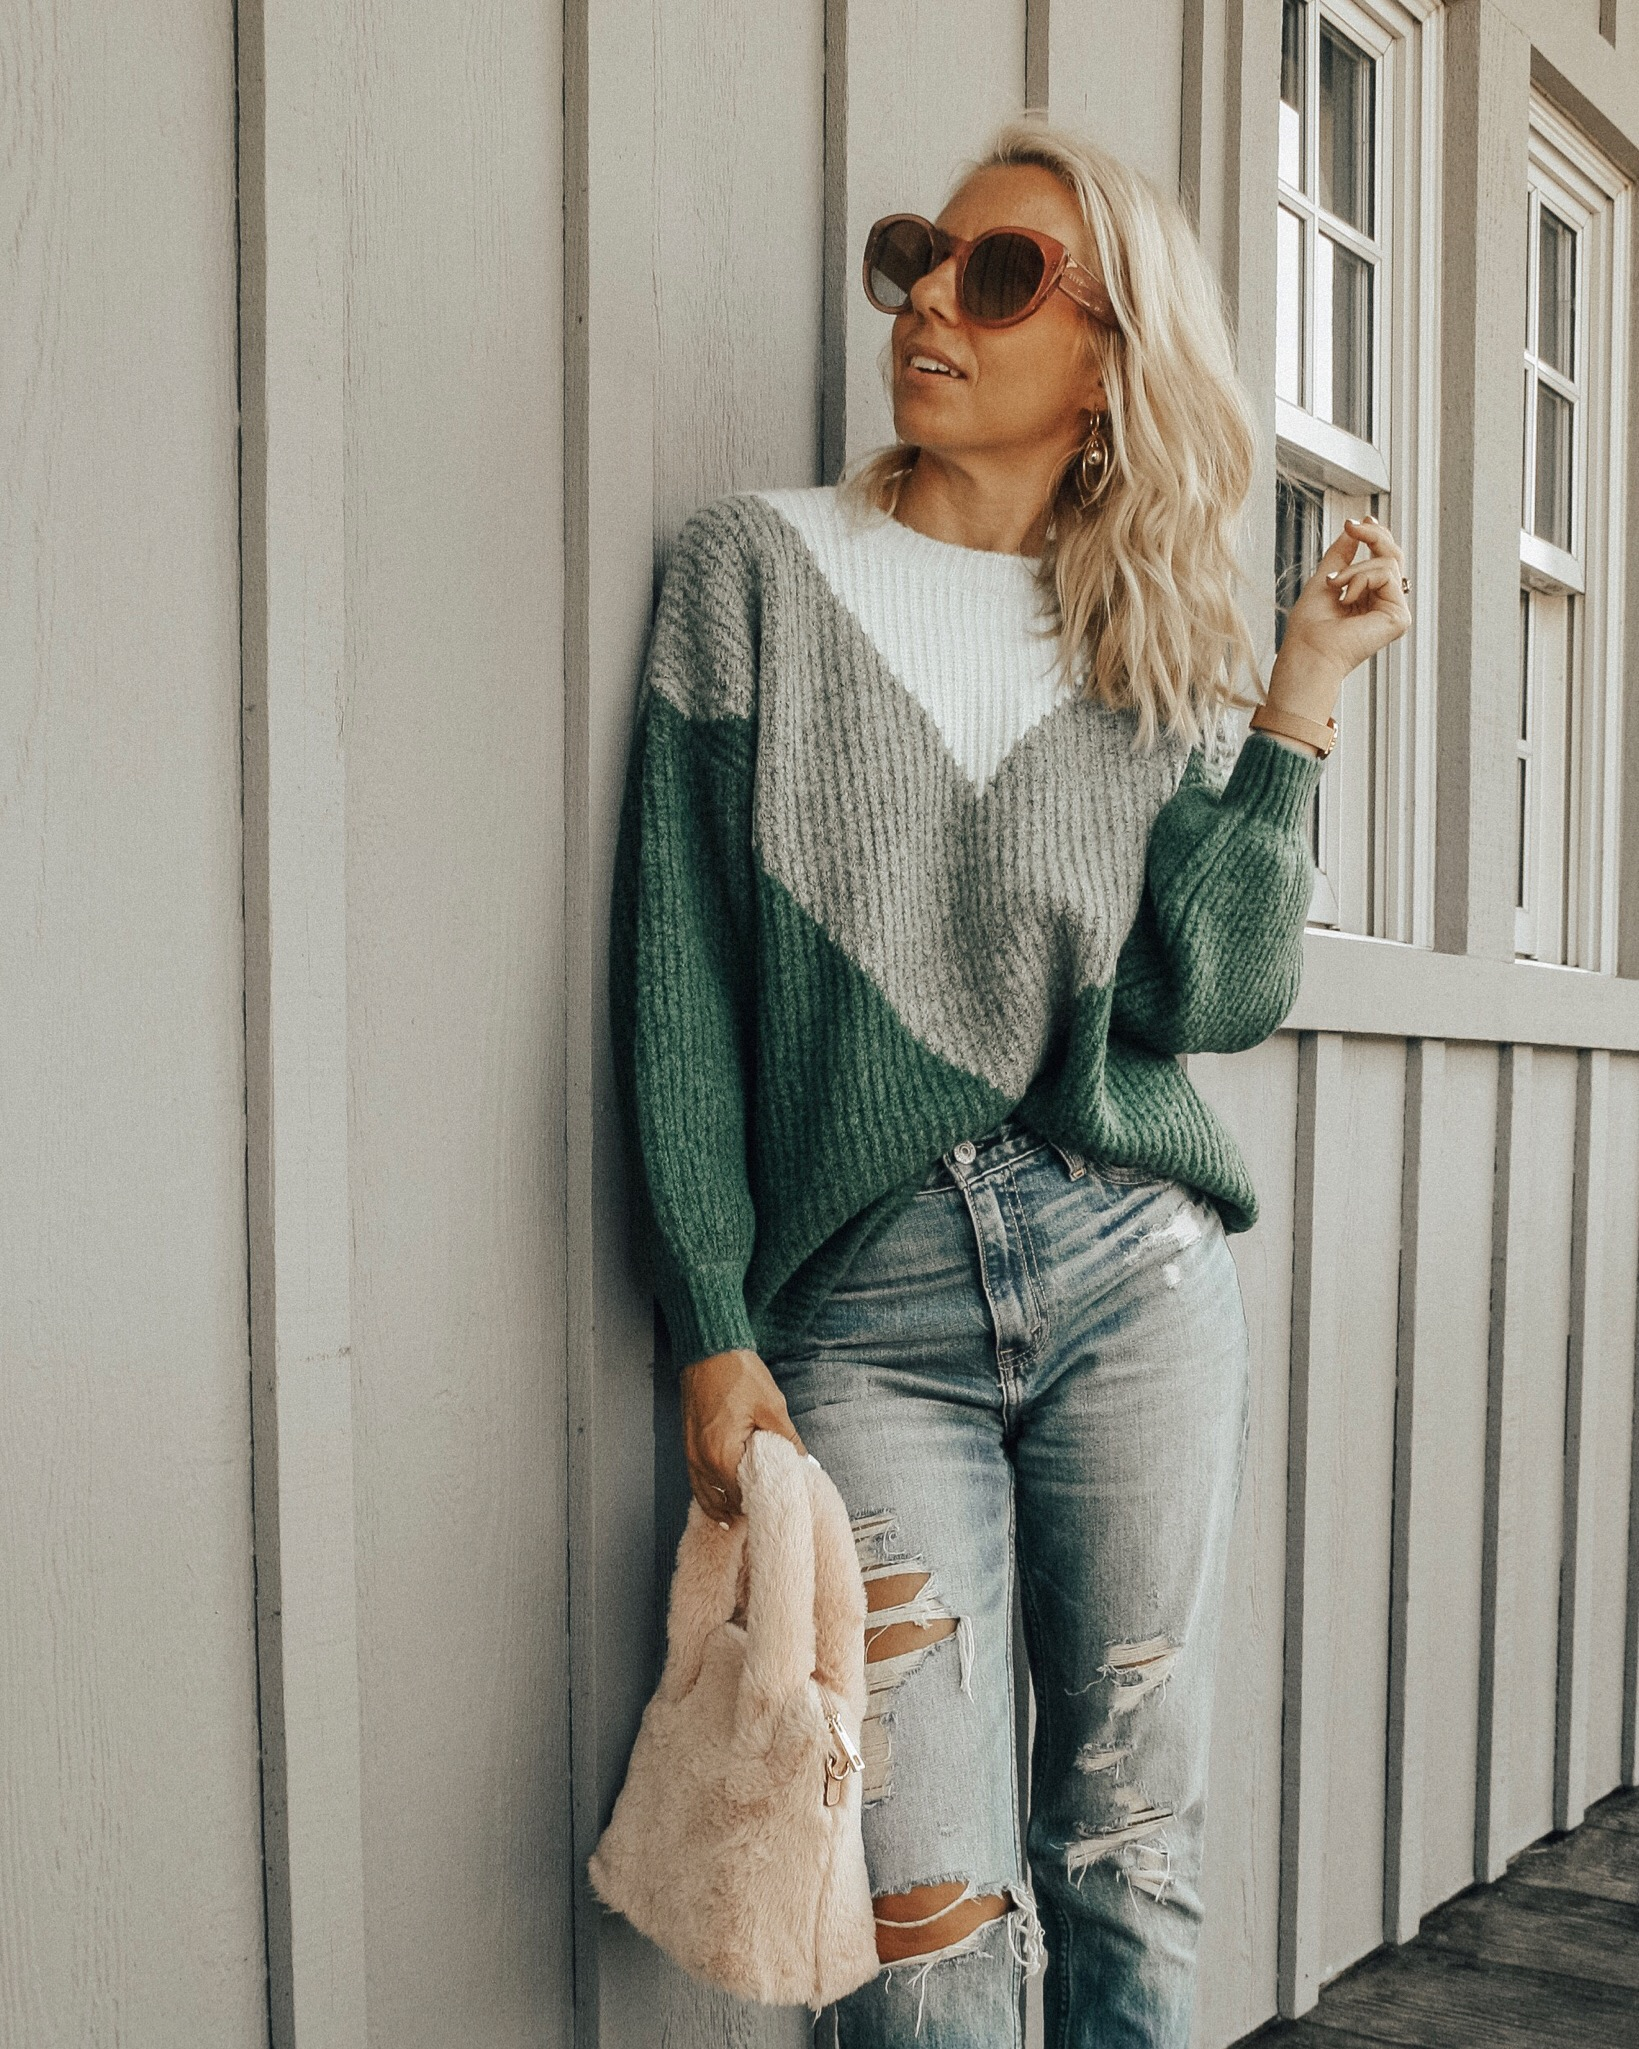 COZY SWEATERS UNDER $35- Jaclyn De Leon Style + casual sweater + chevron print + fall fashion + #sweaterweather + affordable fashion + winter style + casual street style + denim + mom style + stripes + faux fur handbag + retro style + oversized sunglasses + forever 21